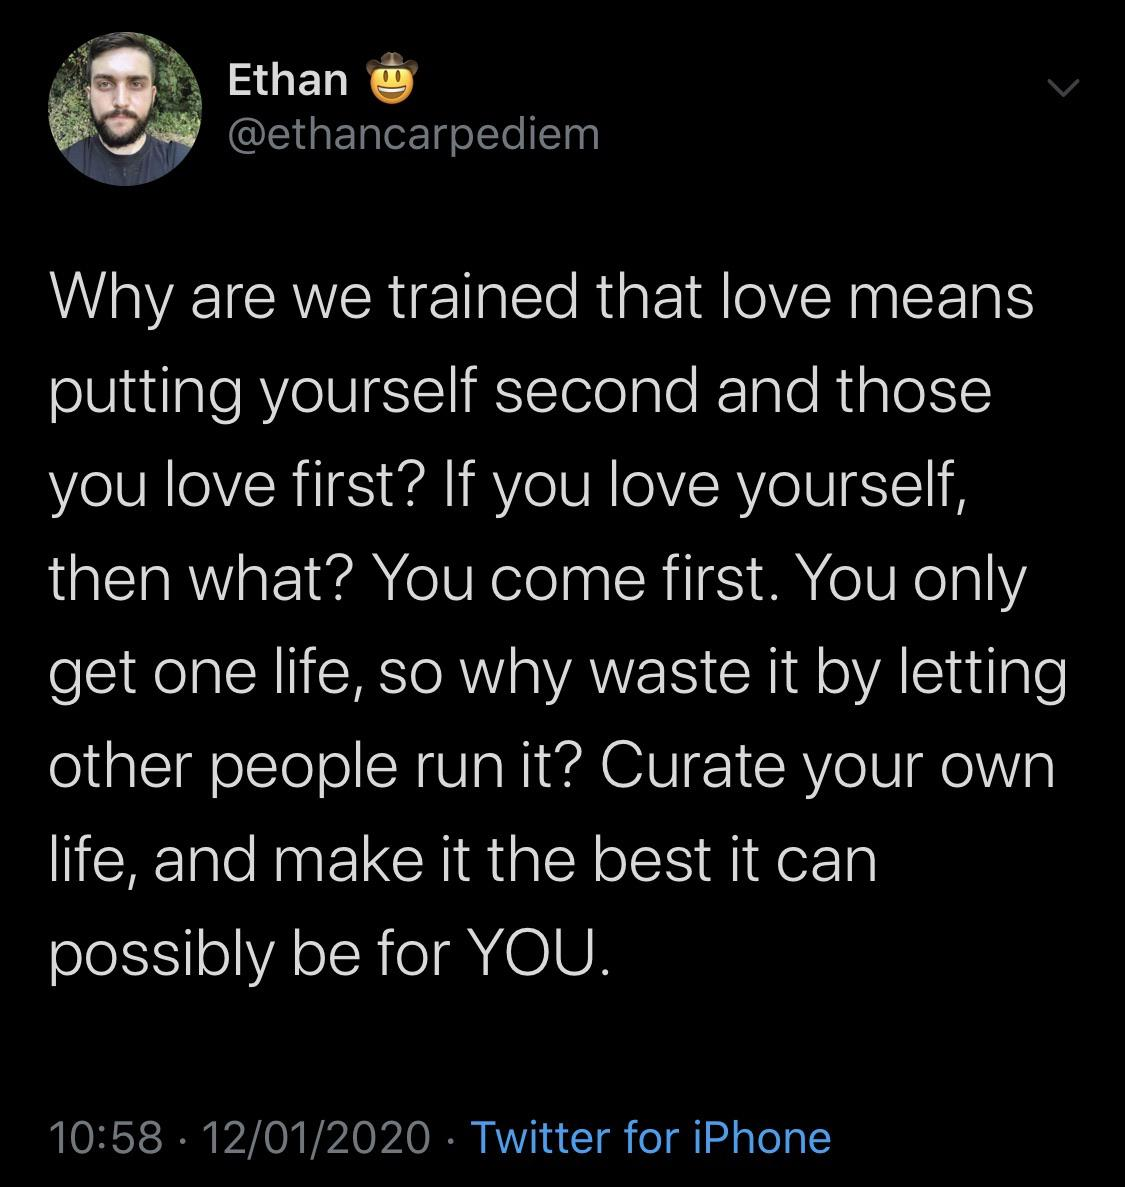 [Image] Curate your own life